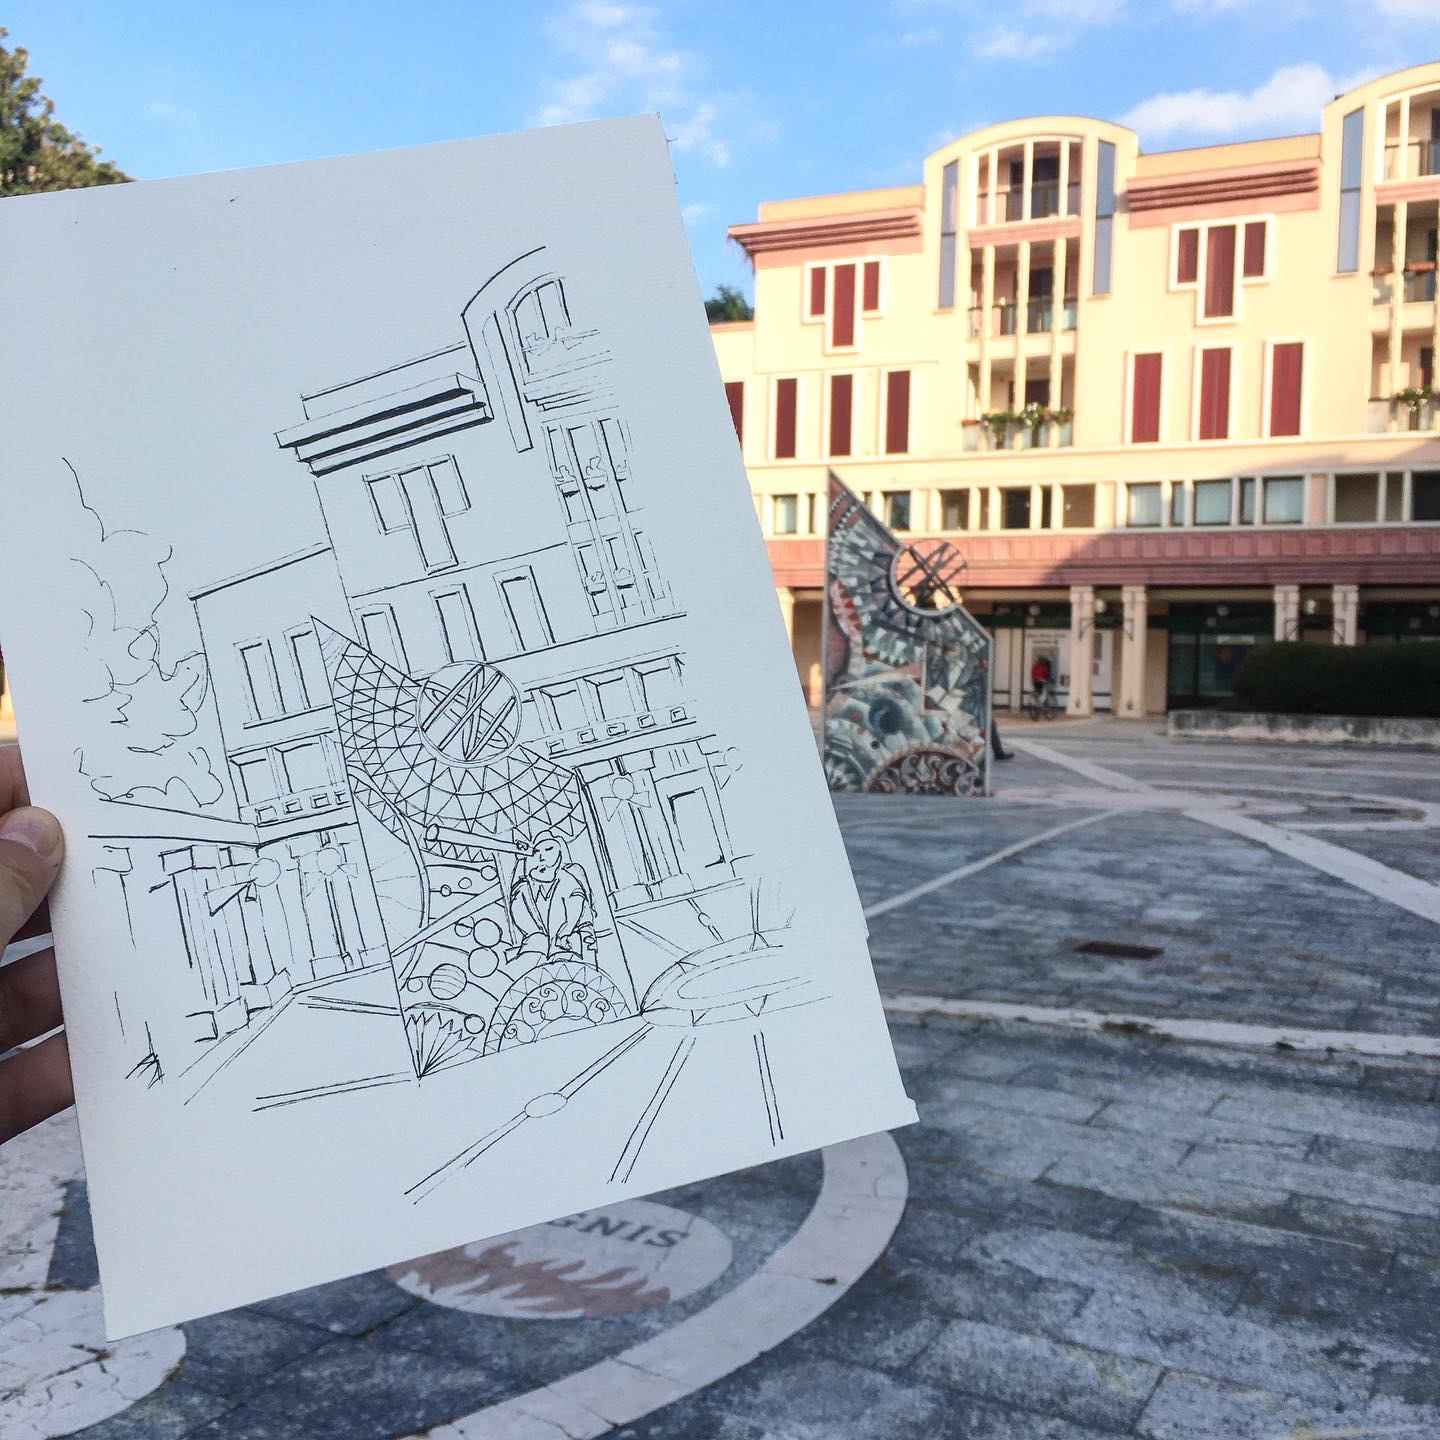 Sun and Peace Square in Abano Terme